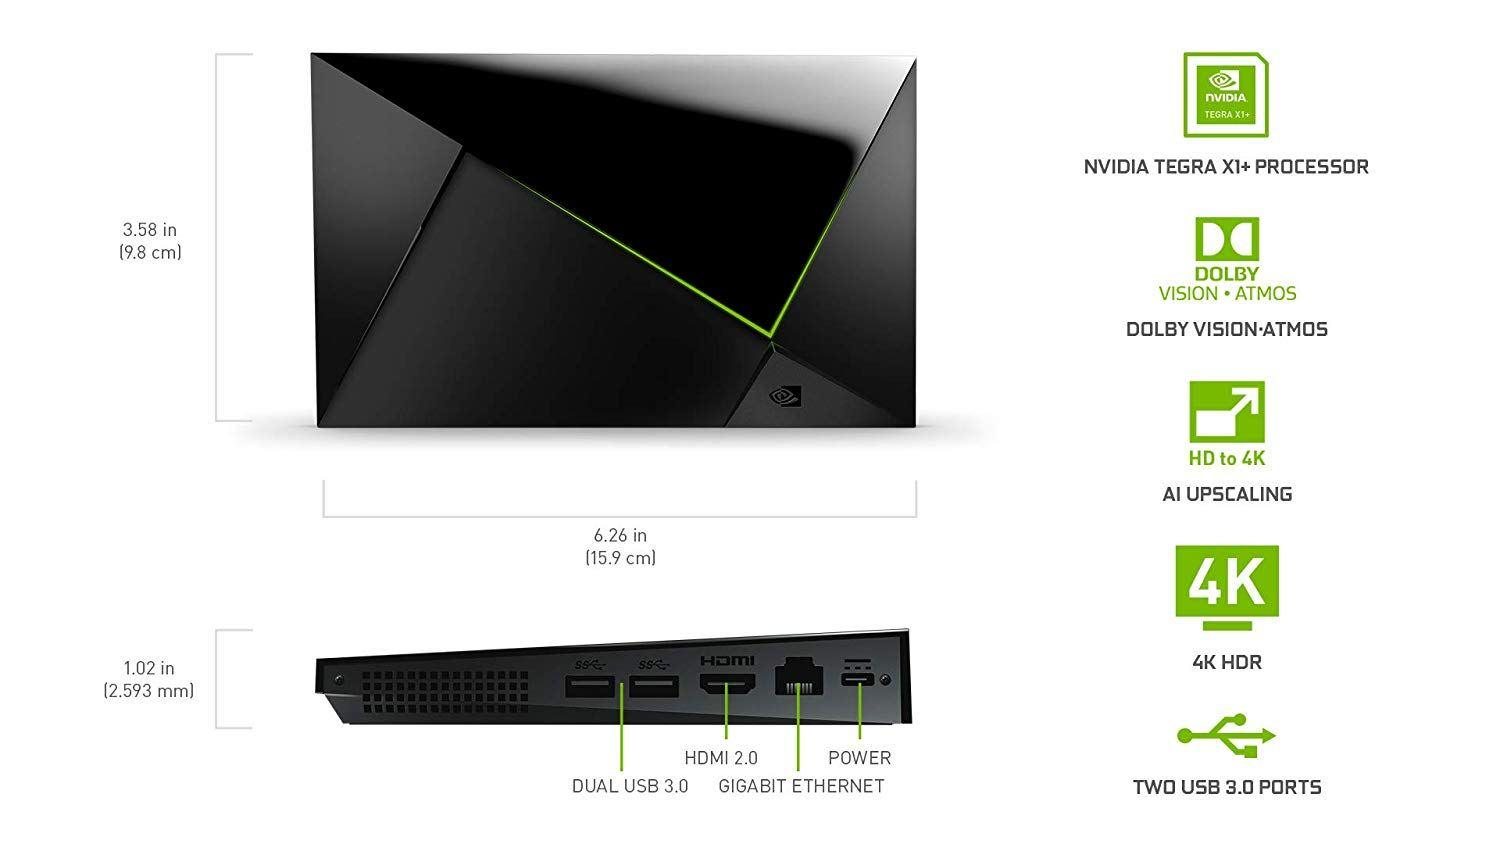 NVIDIA SHIELD TV Pro在Amazon上洩漏;在10月28日以199美元的價格出售,配備Tegra X1+處理器 - XFastest - nvidia_shield_tv_pro_2.jpg